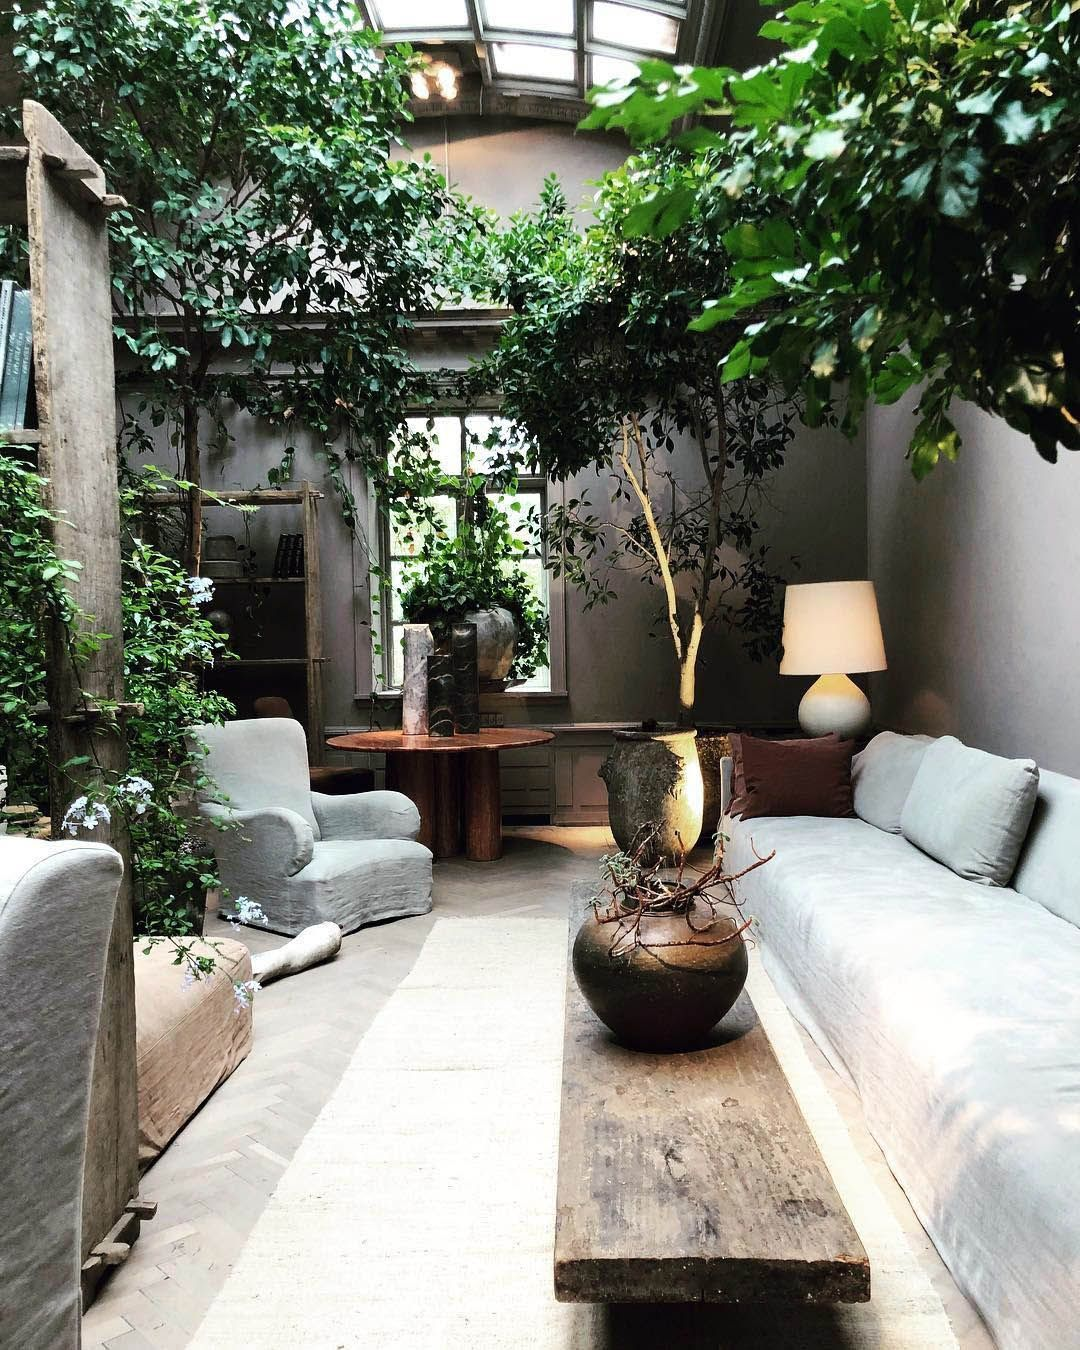 Awesome Indoor Garden Designs Ideas For Home 9 in 9  Interior